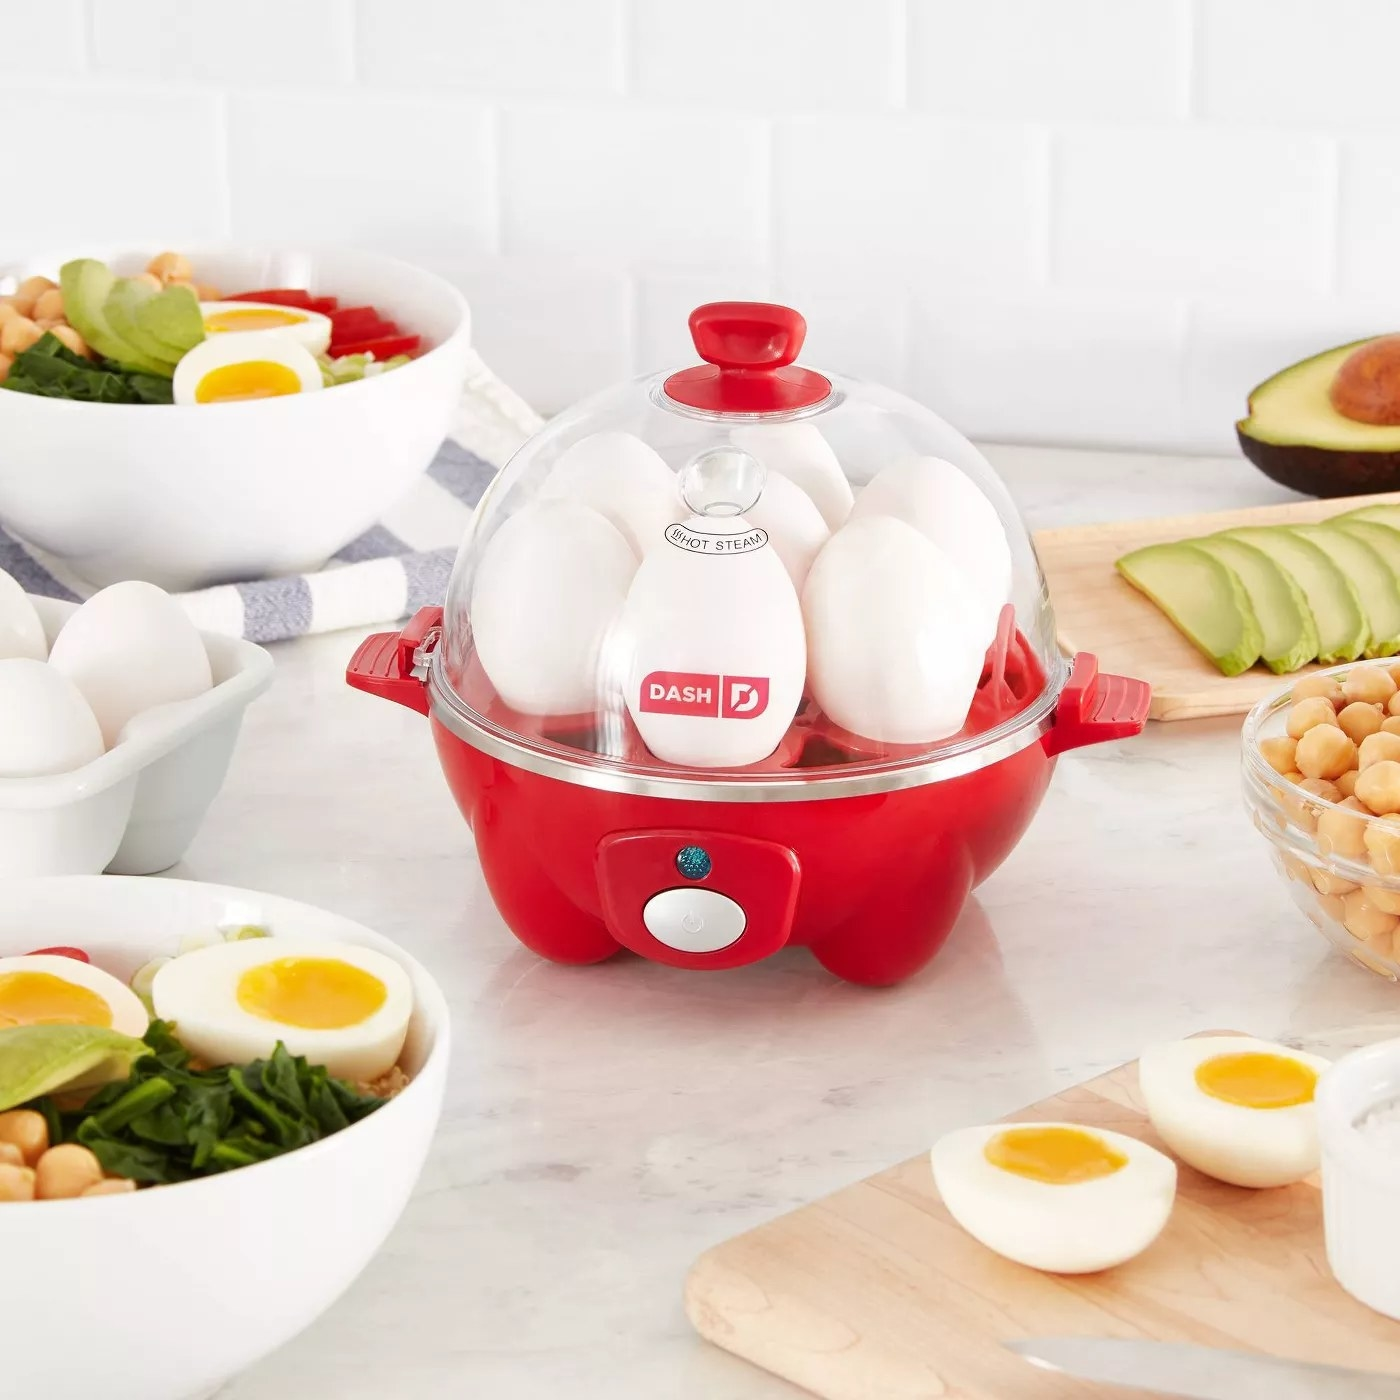 The cooker with eggs inside